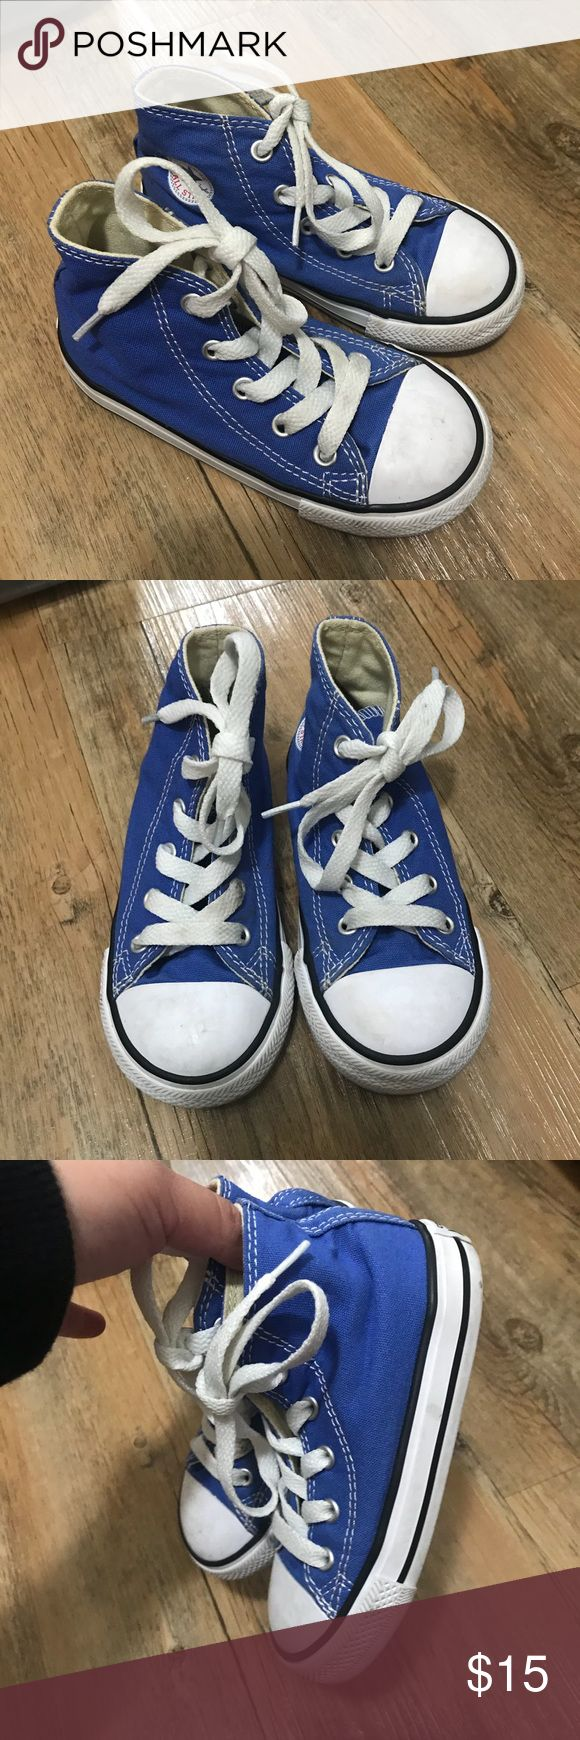 Size 8c kid converse high tops Worn once to Disneyland need to be wiped down Converse Shoes Sneakers